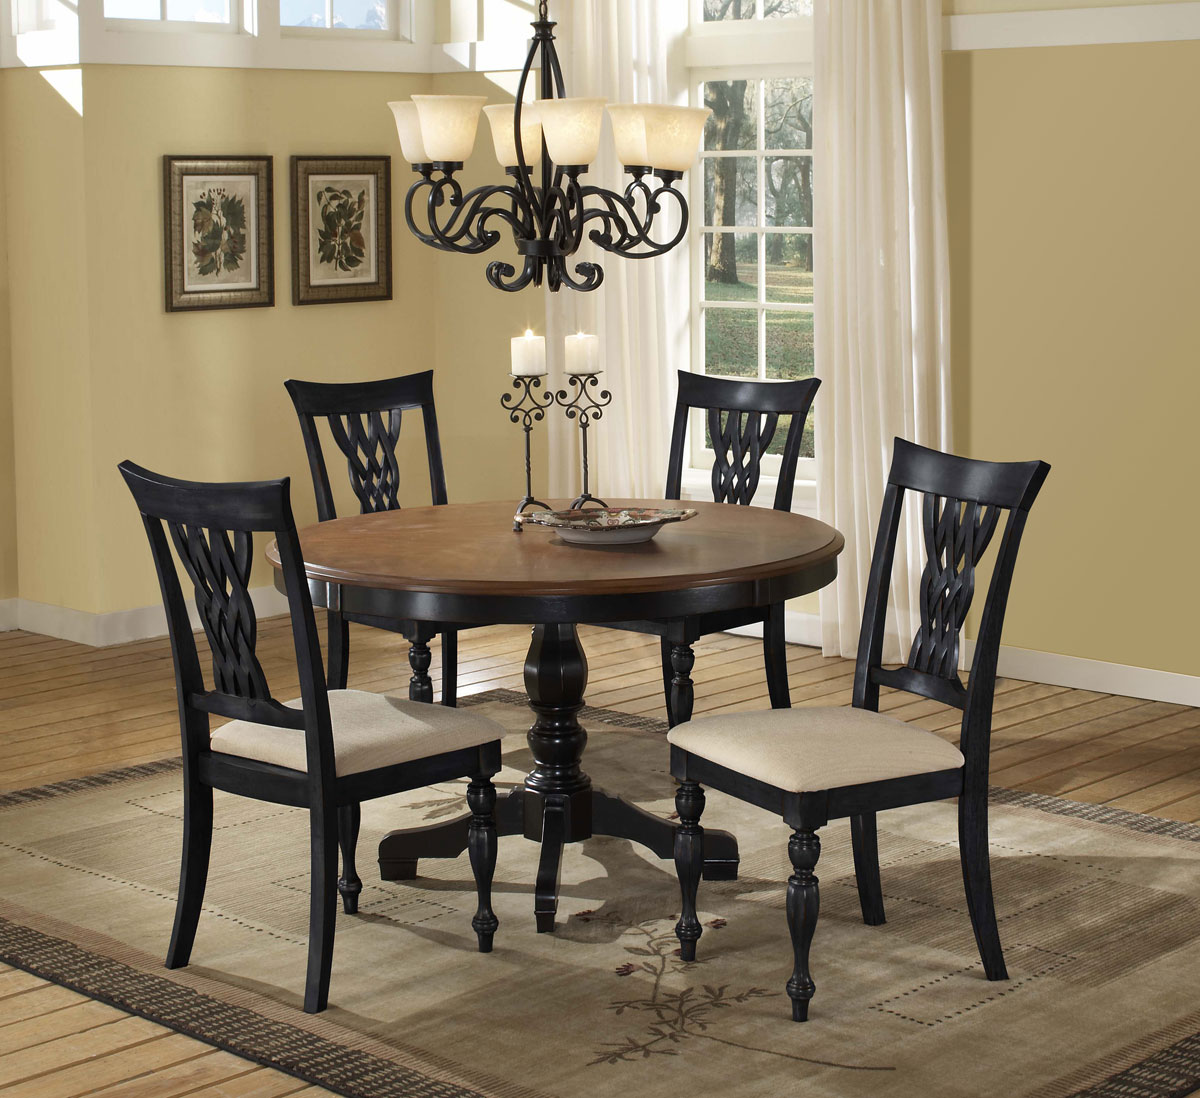 Hillsdale Embassy Round Pedestal Dining Table   Rubbed Black U0026 Cherry